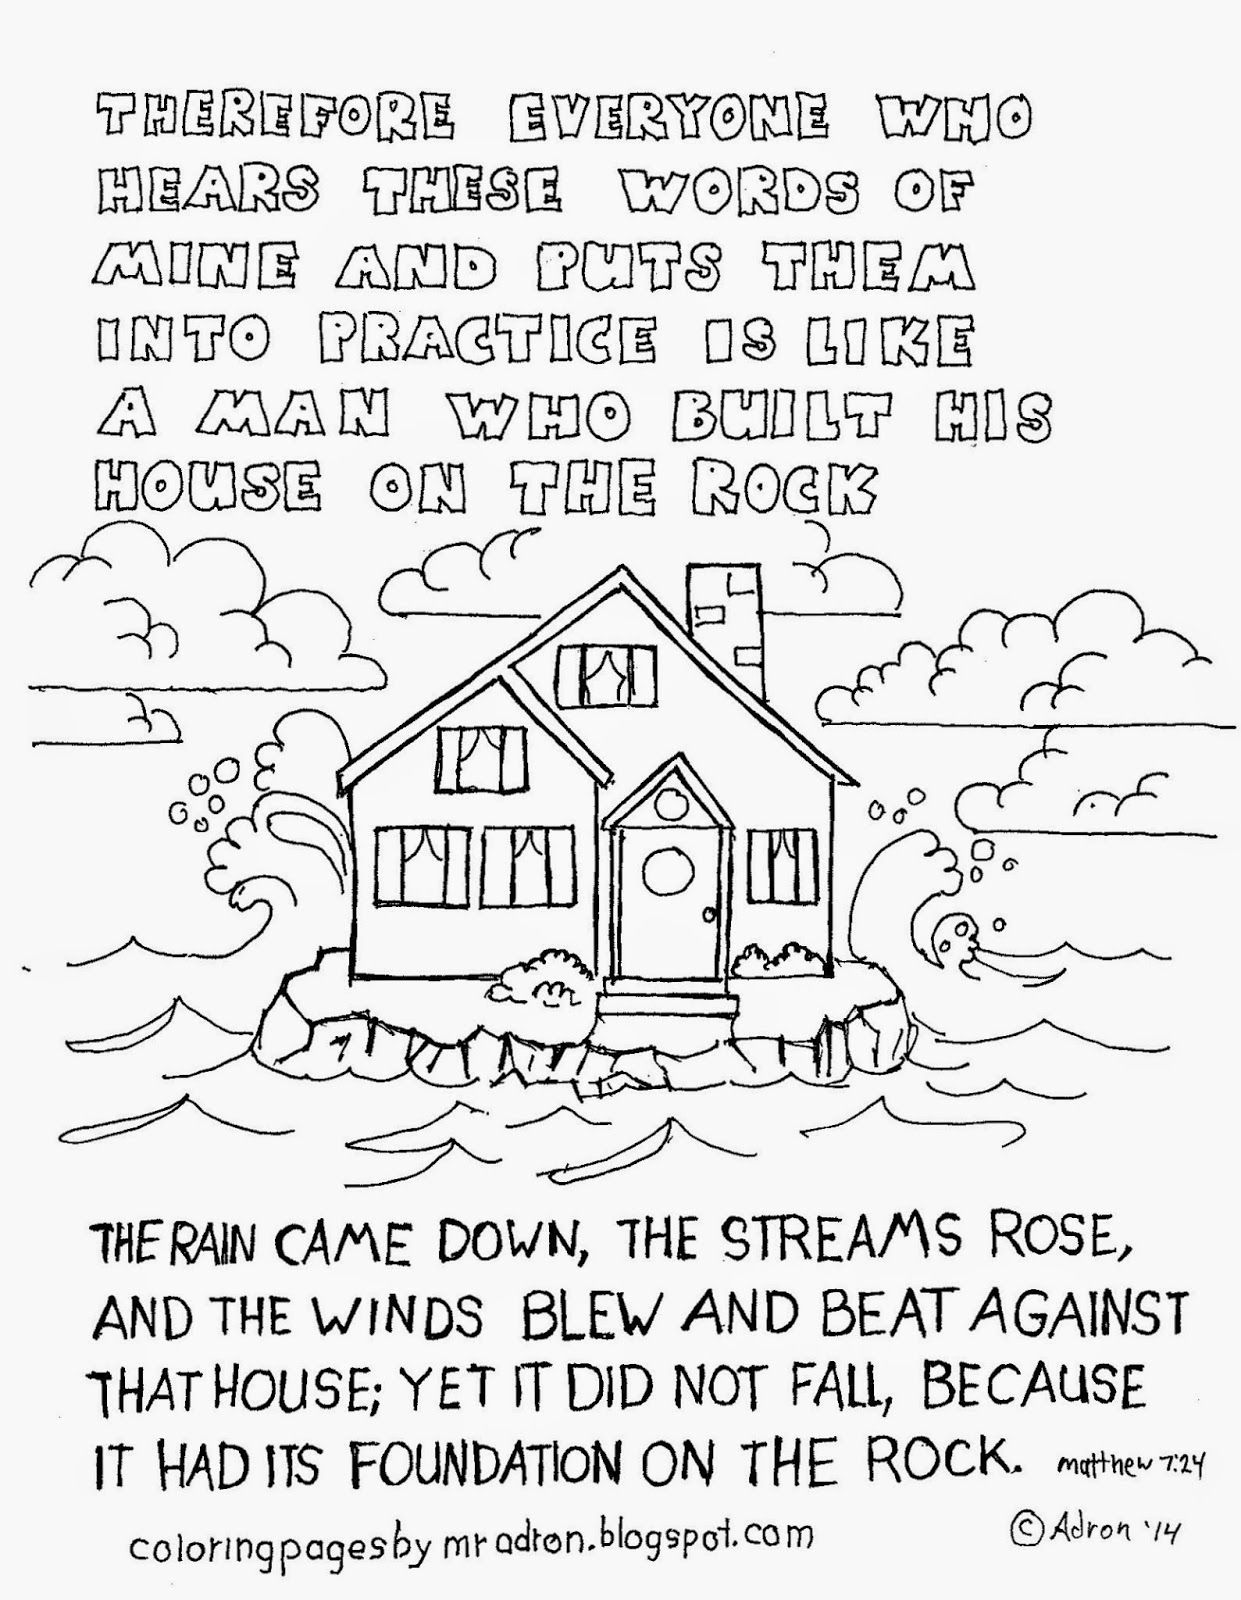 Coloring Pages for Kids by Mr. Adron: Matthew 7:24, The Man Who ...